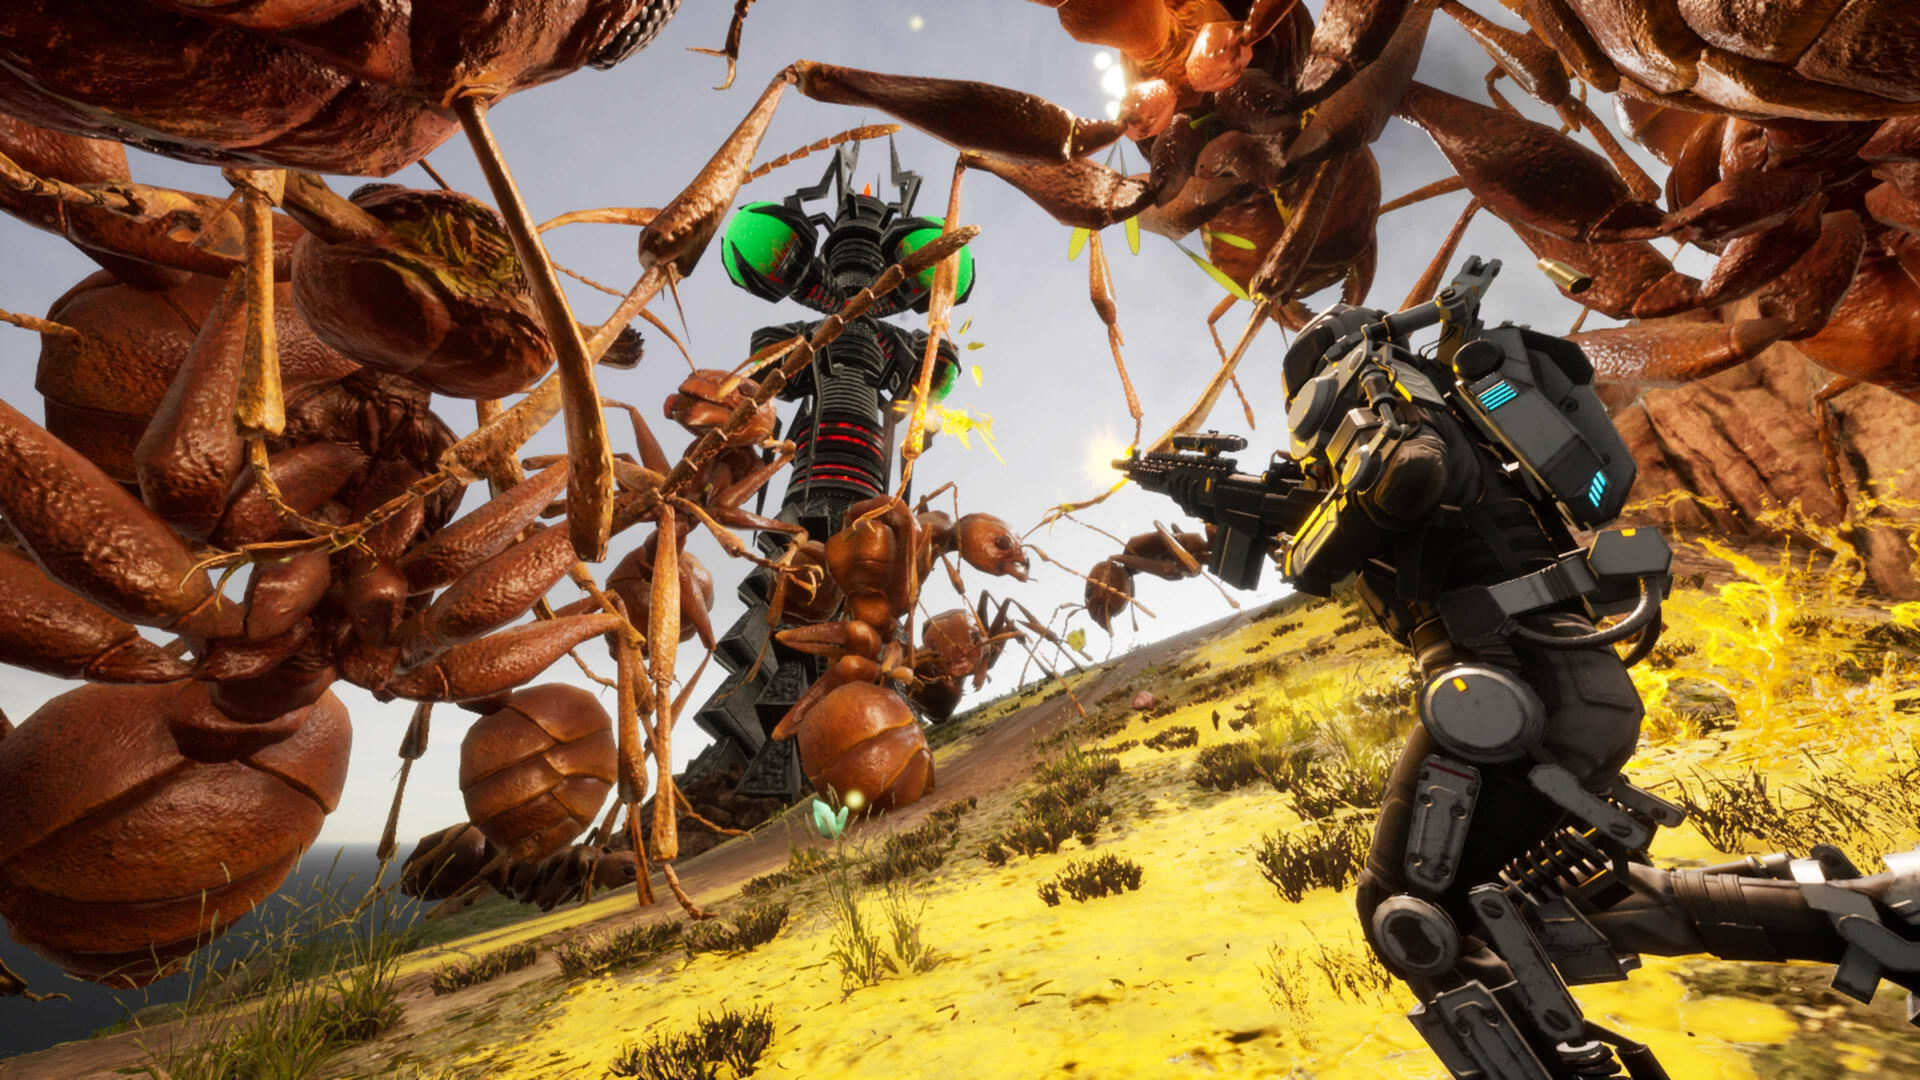 Earth Defense Force: Iron Rain's Producer on Finding New Fans in the West